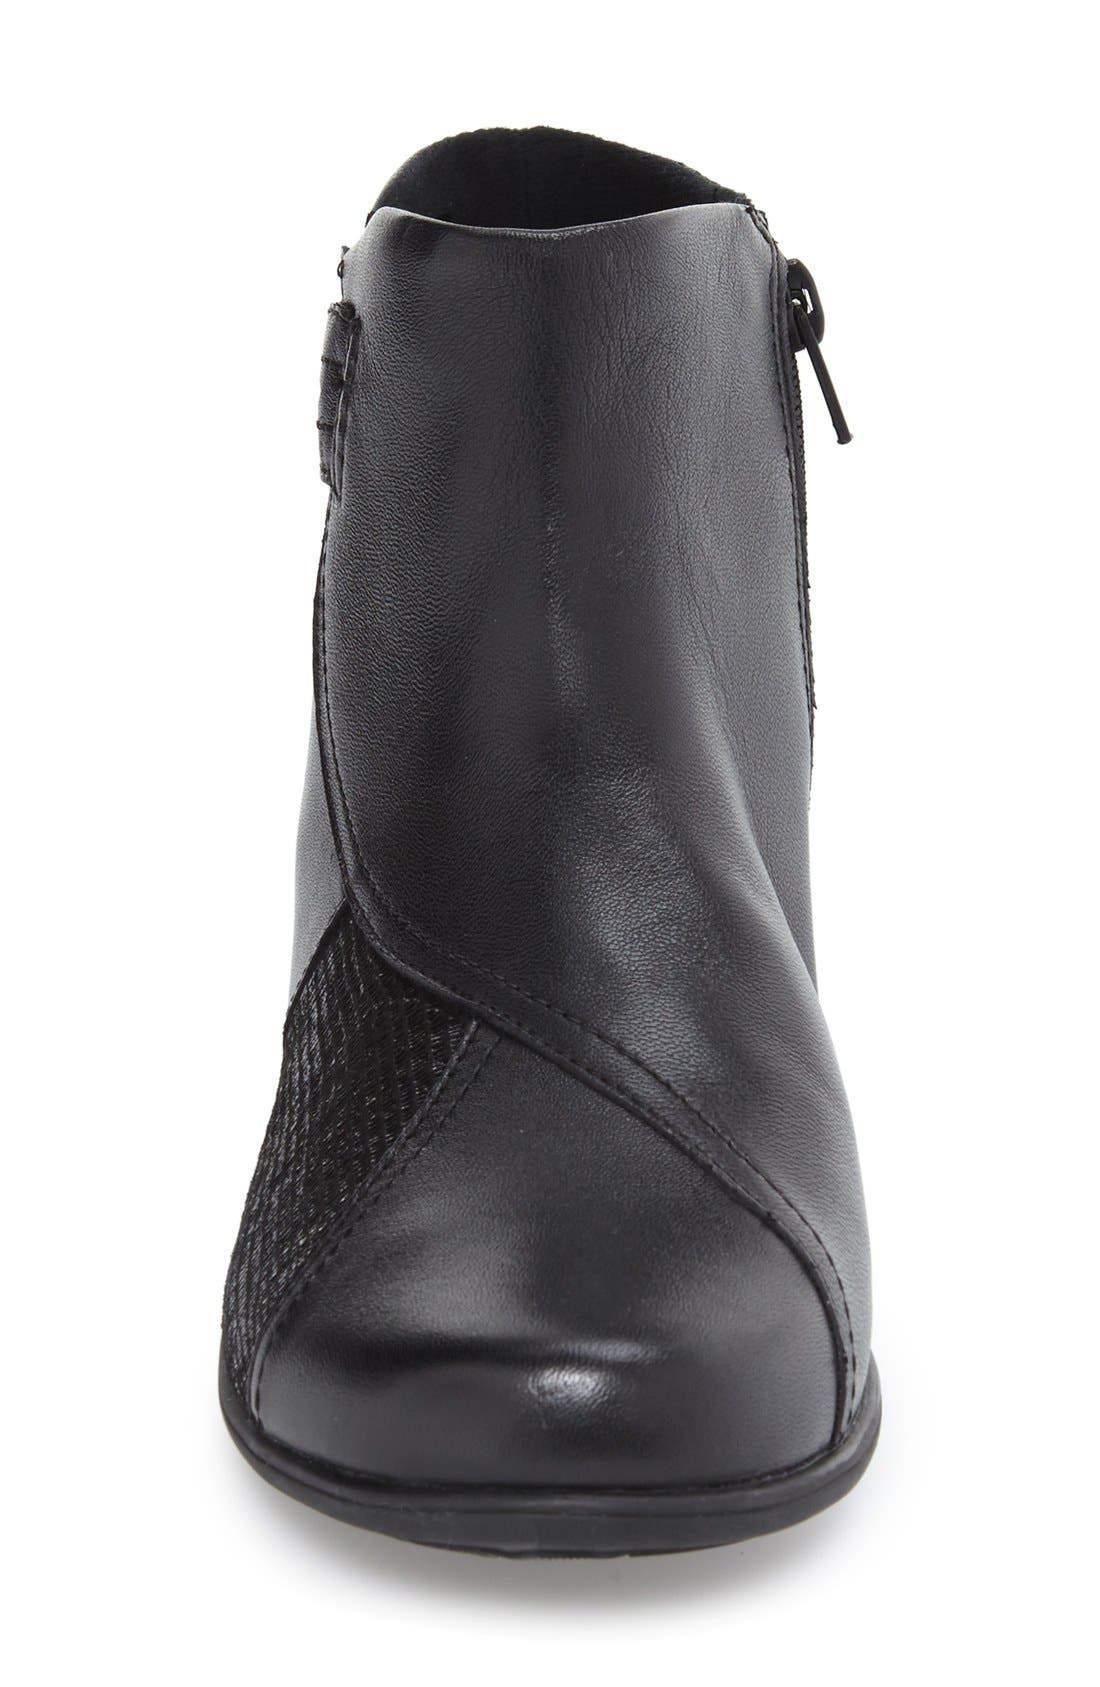 'Anstice' Wedge Bootie,                             Alternate thumbnail 3, color,                             Black Leather